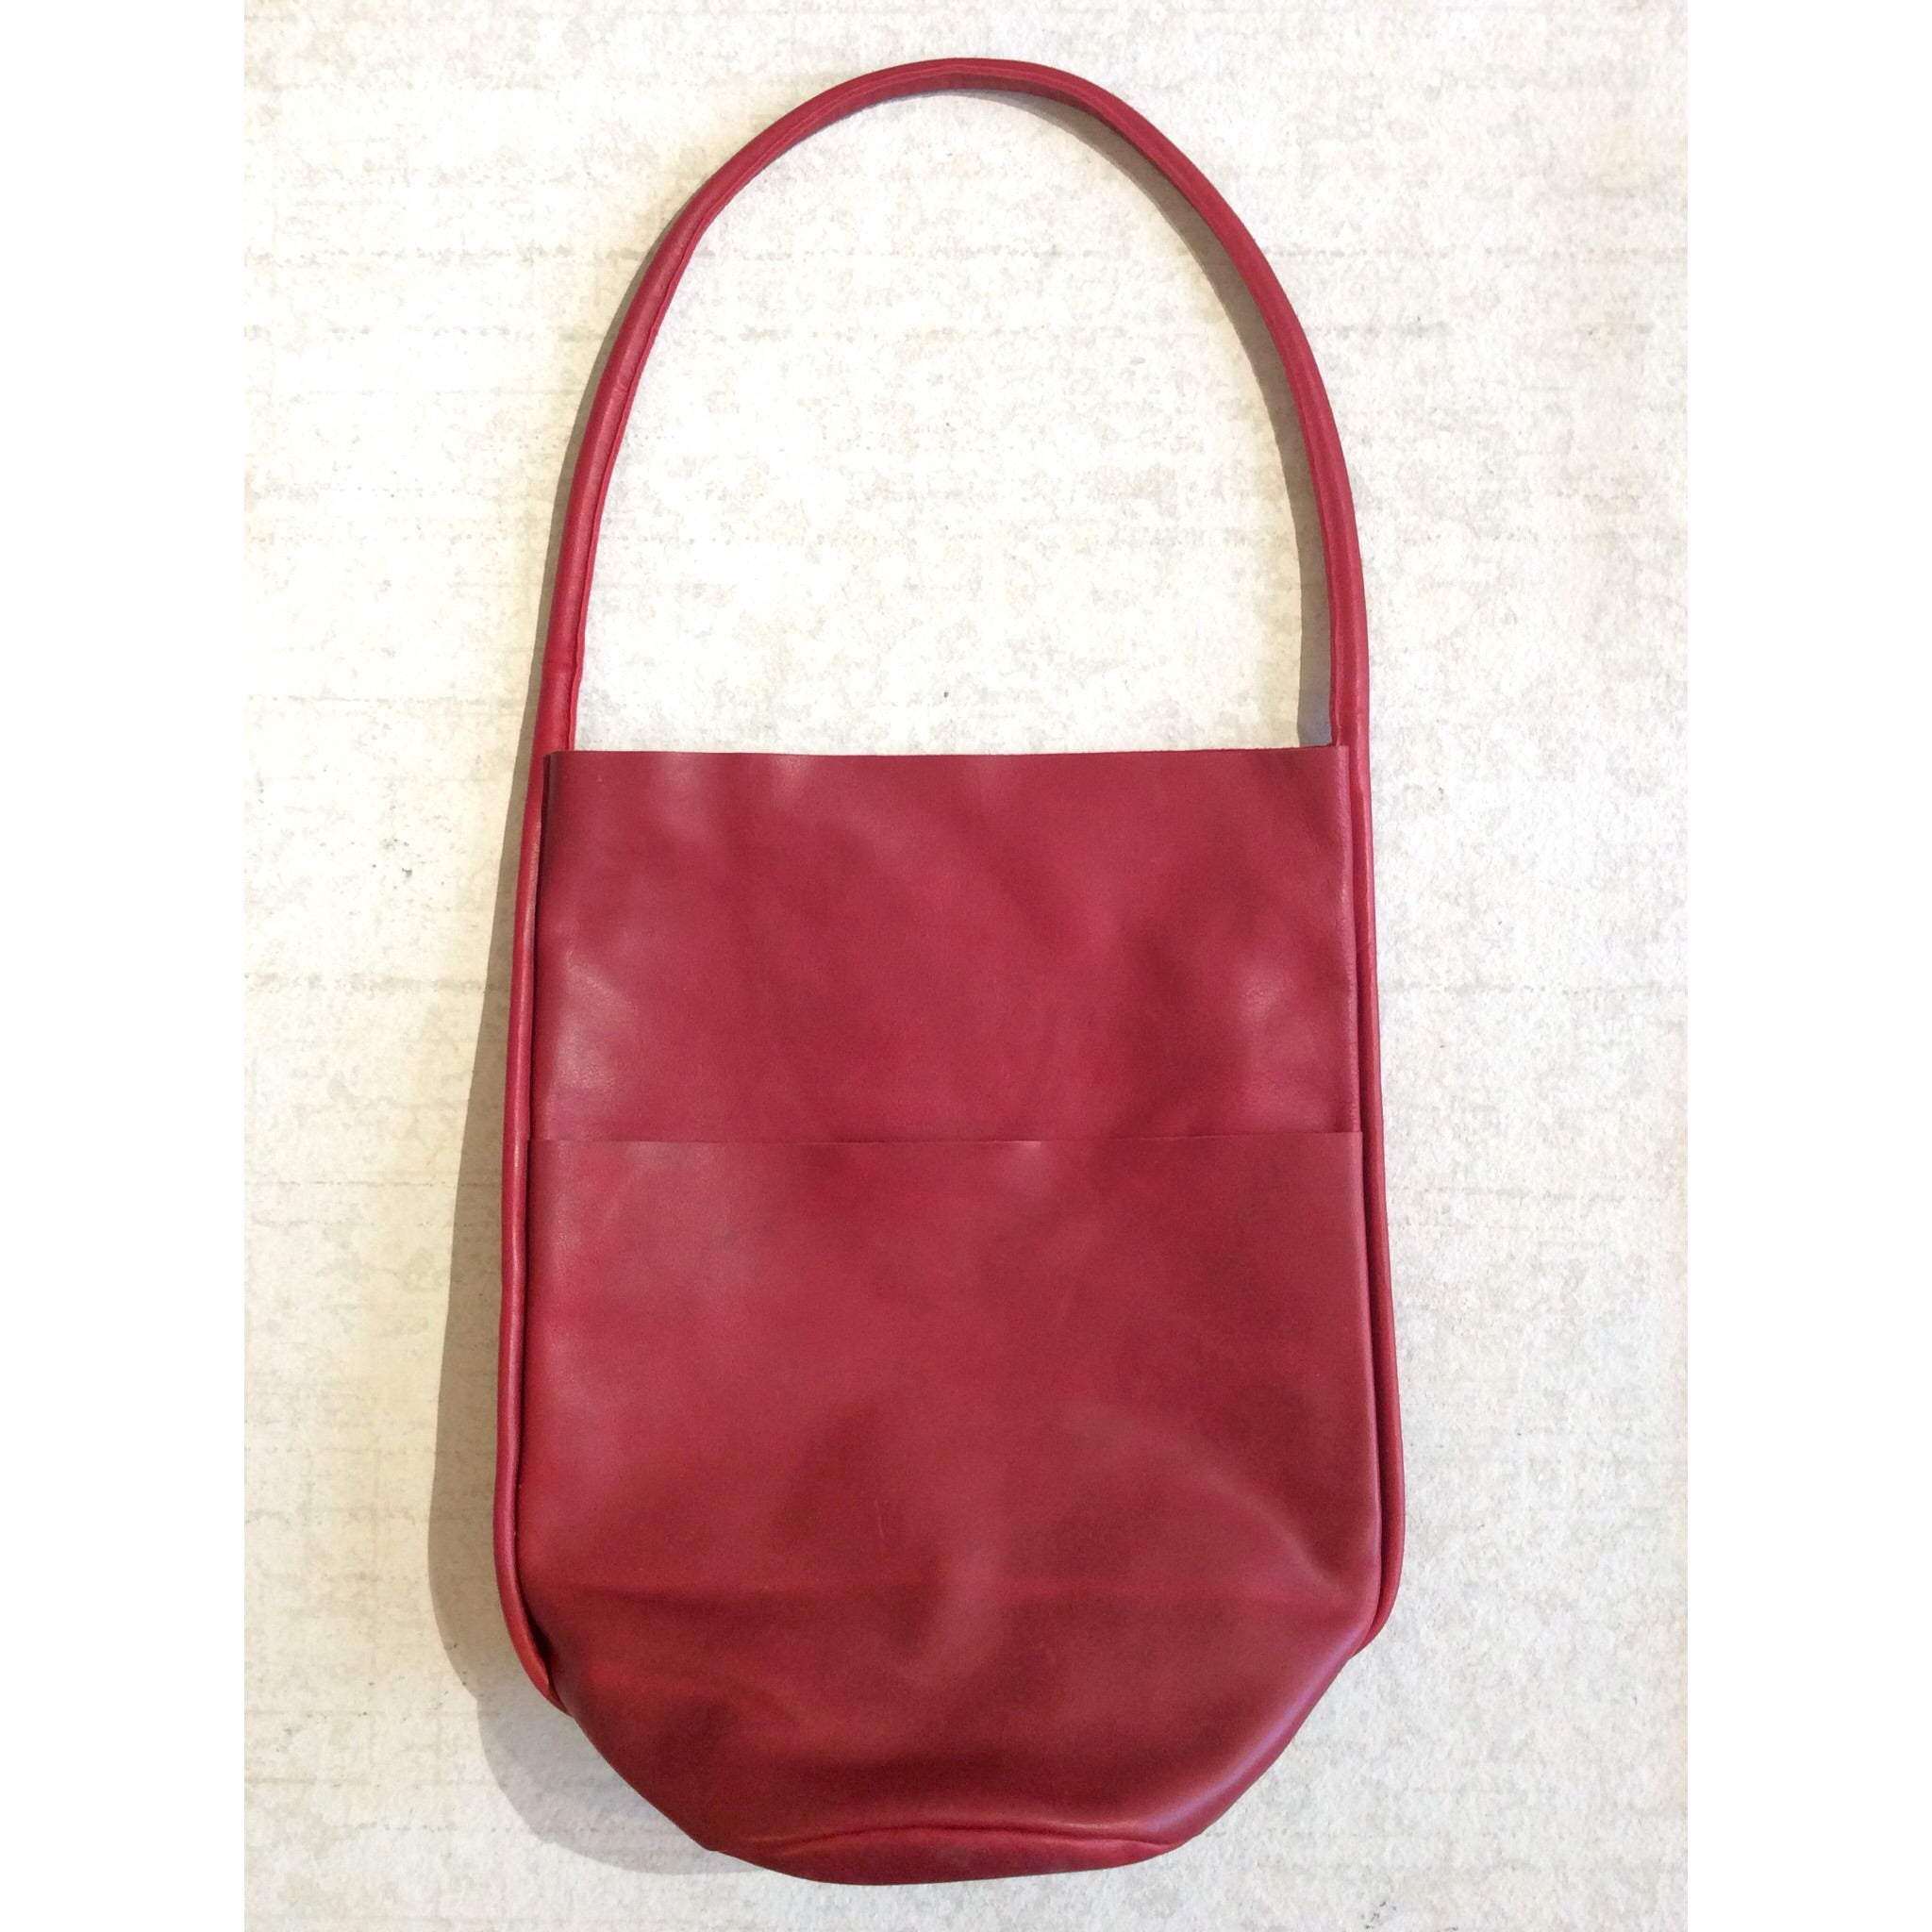 BODY SCULPTURES LEATHER SHOPPER BAG / RED